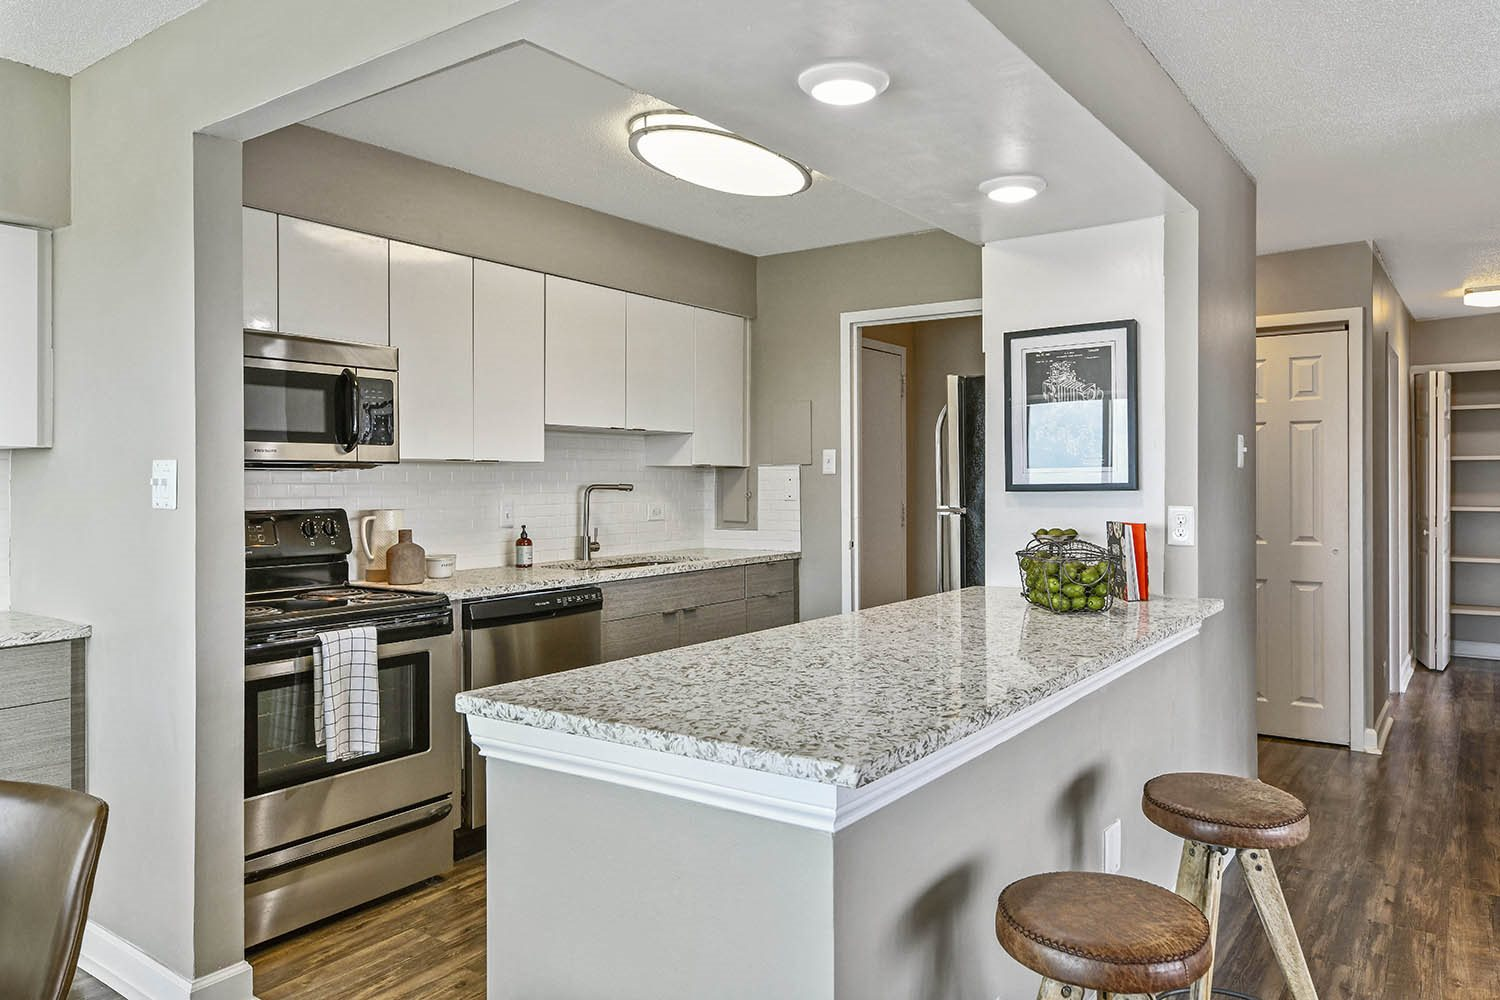 Eat-In Kitchen at CityView on Meridian, Indianapolis, Indiana